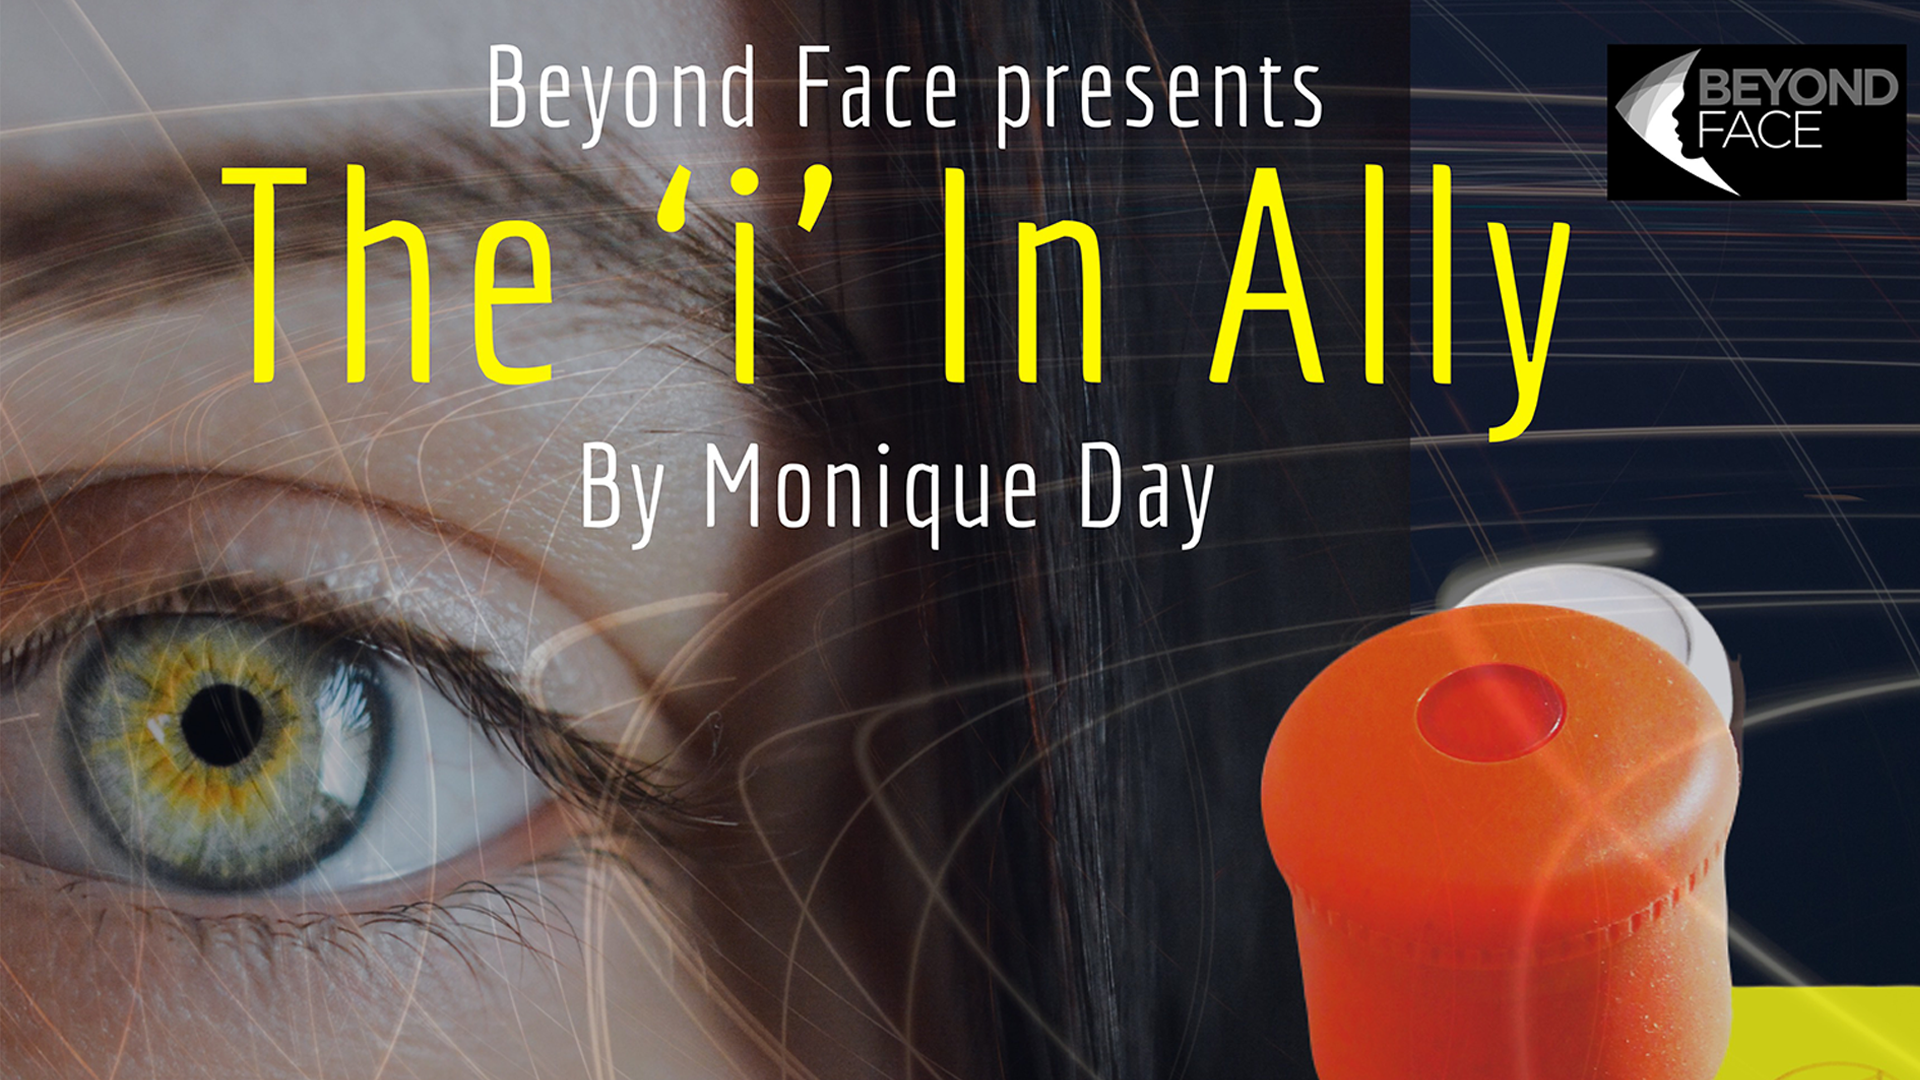 Close-up photo of a woman's eye next to a big red button. TEXT: Beyond Face presents the i in Ally by Monique Day